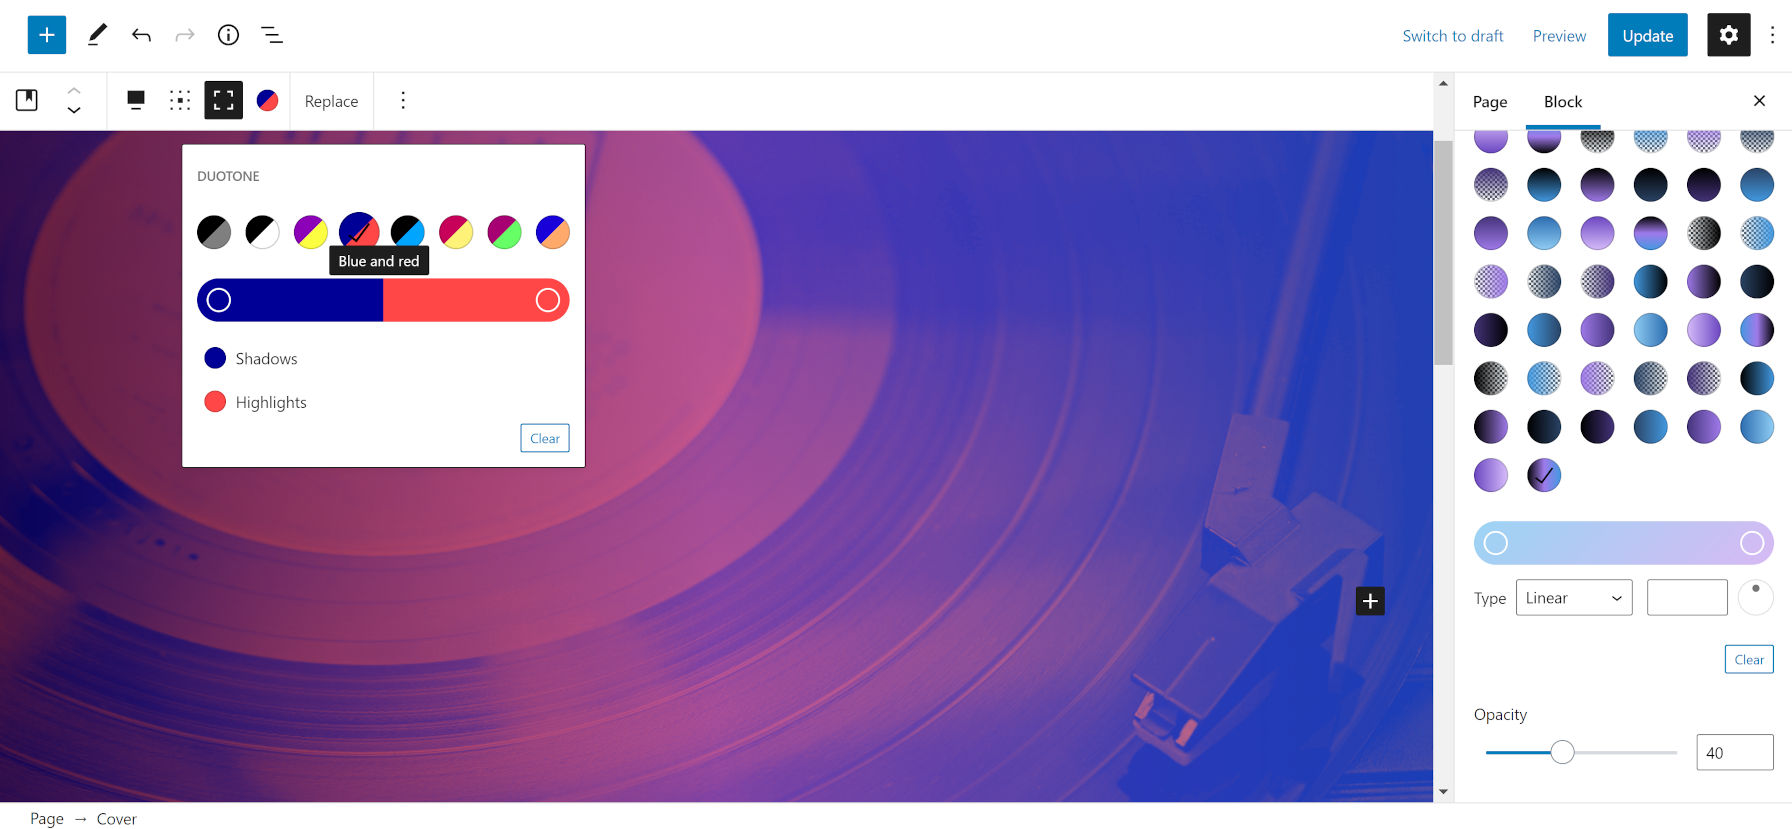 Applying a blue and red duotone filter along with a black, purple, and blue transparent overlay on top of an image of a record and player.